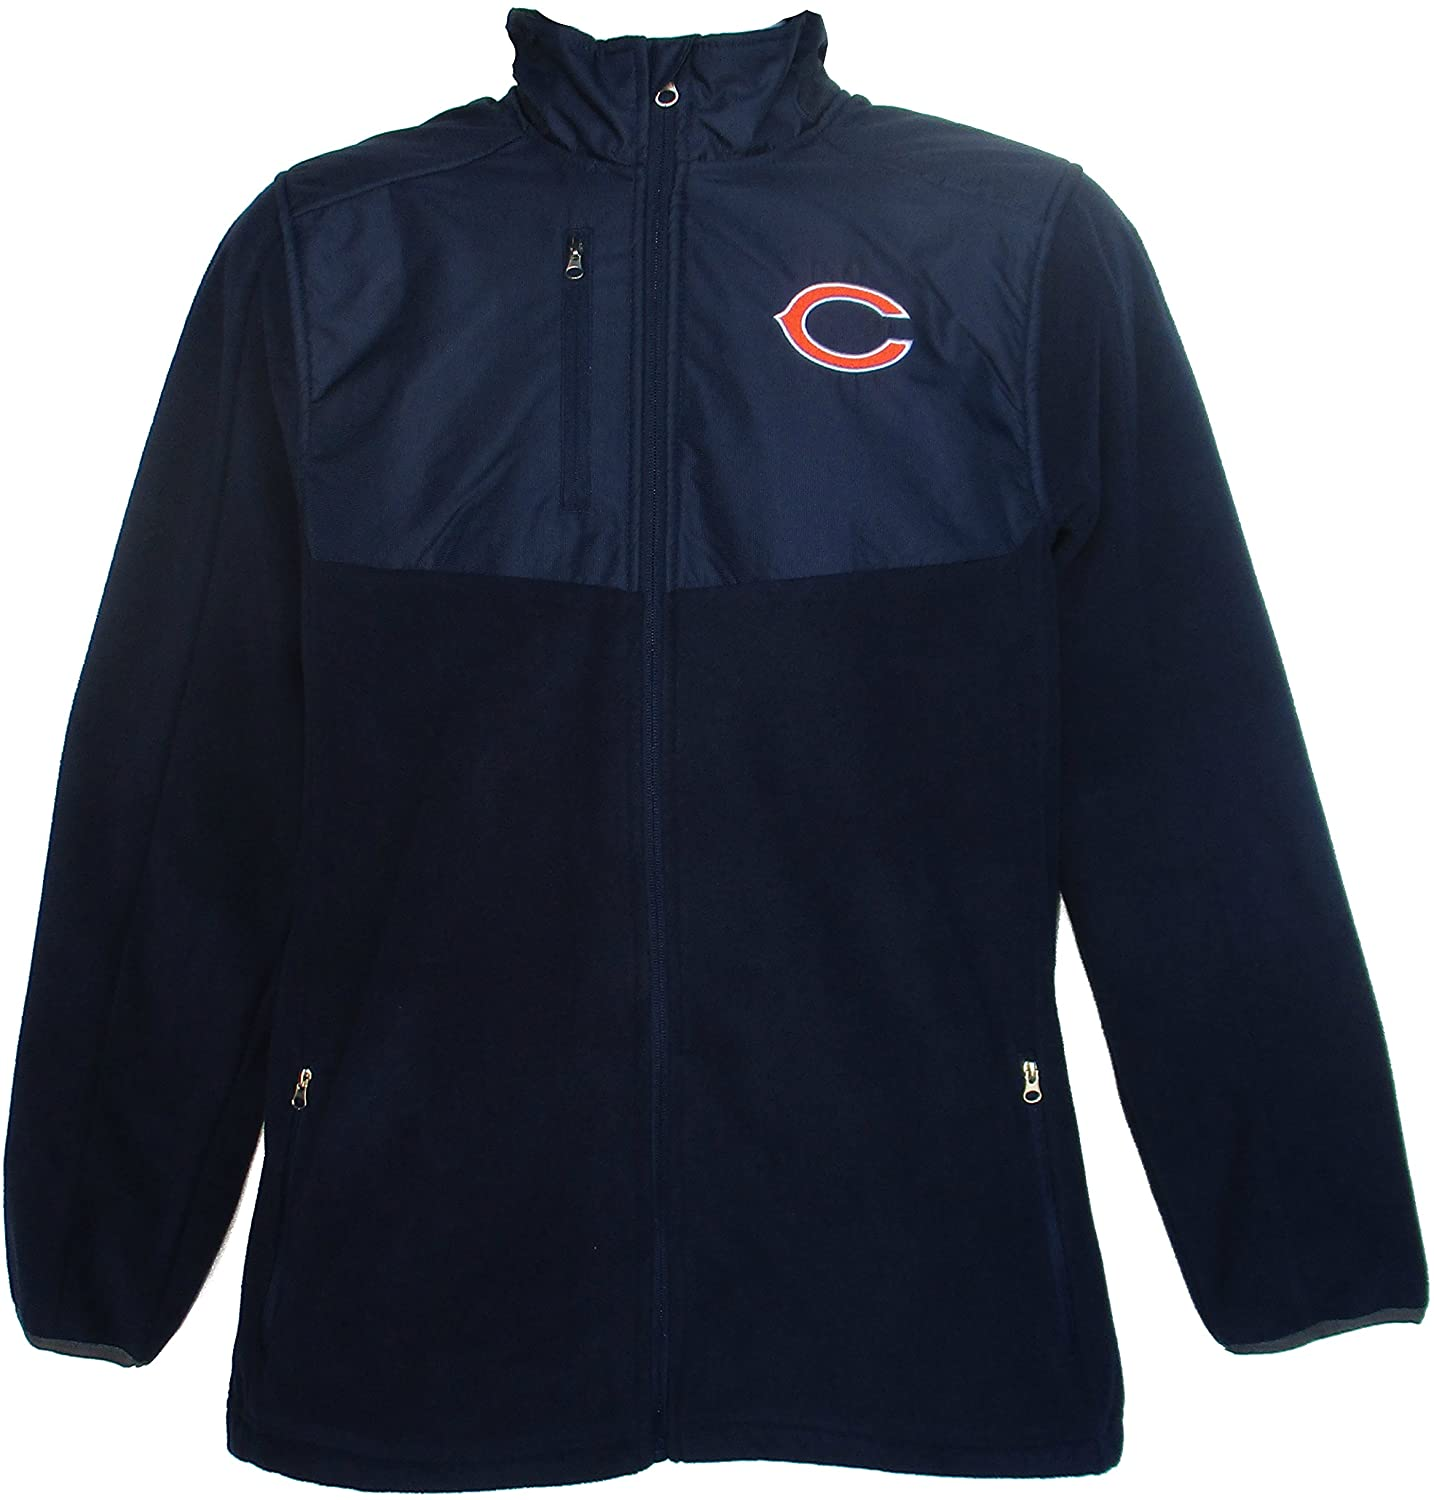 Chicago Bears Youth Size X-Large (18) Full Zip Jacket - Navy Blue